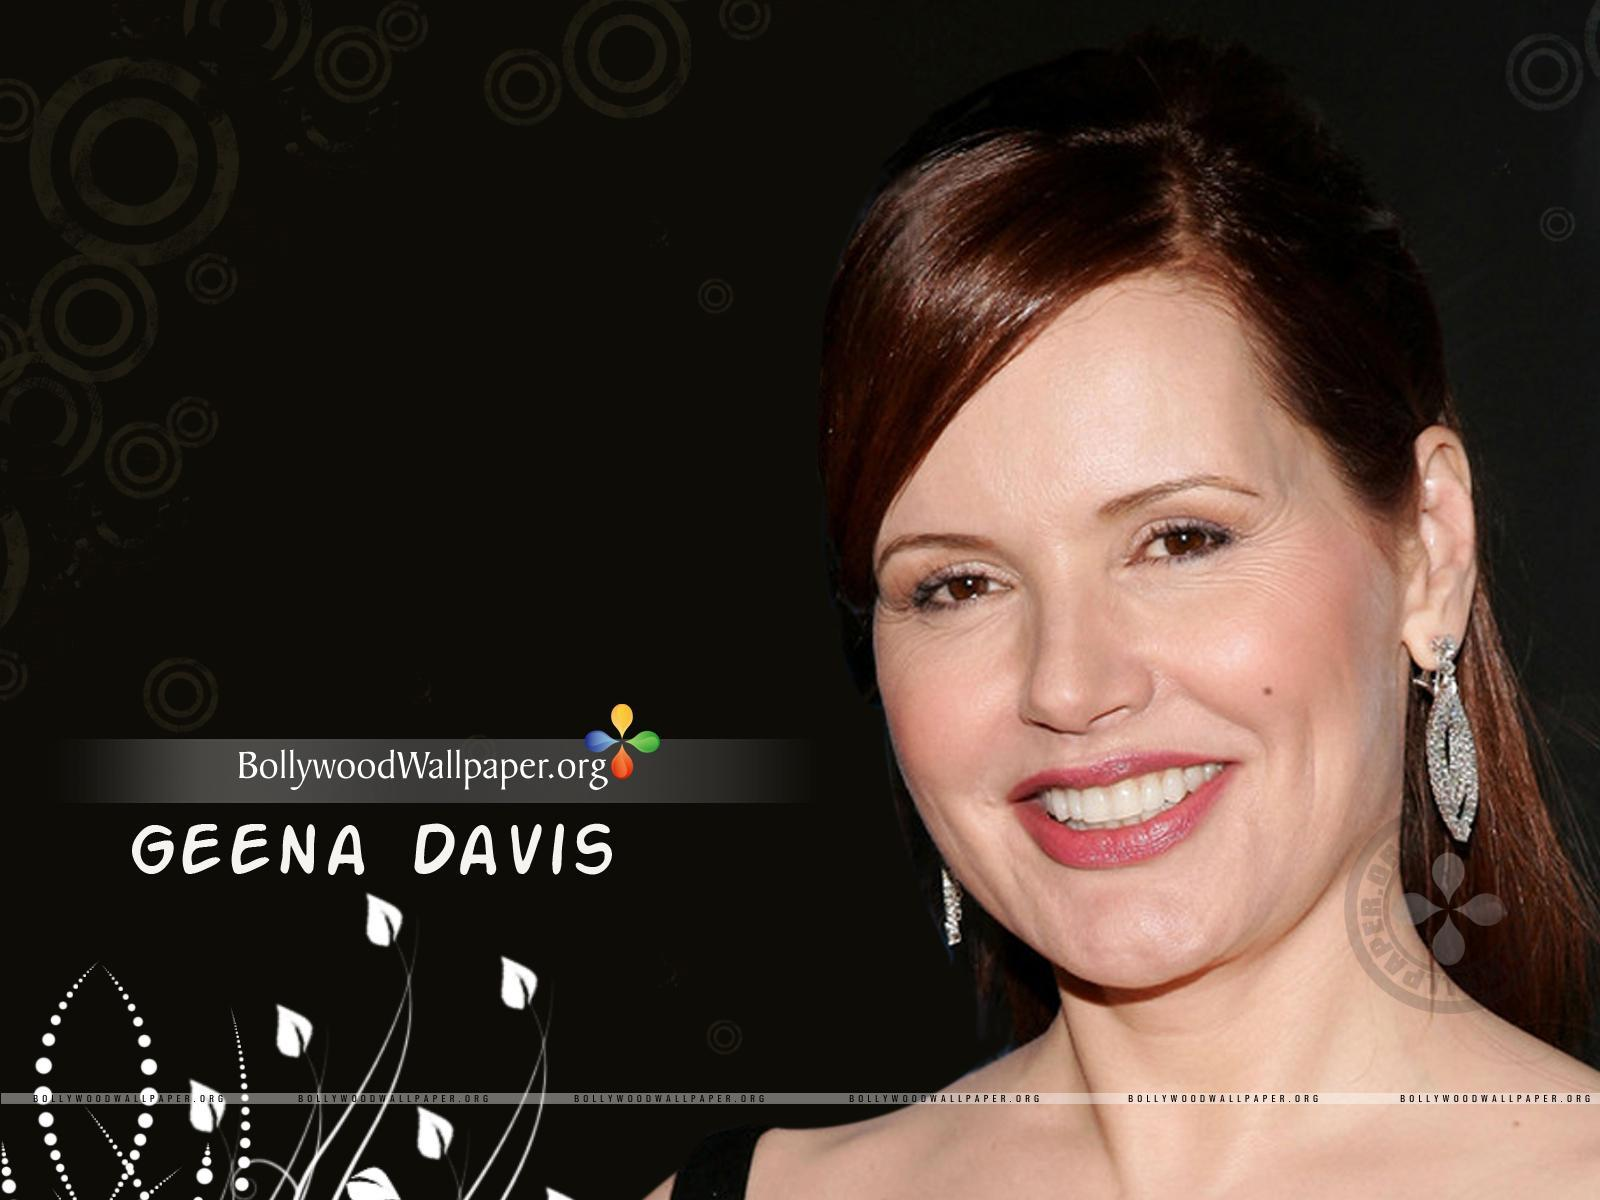 Geena Davis Wallpapers High Quality